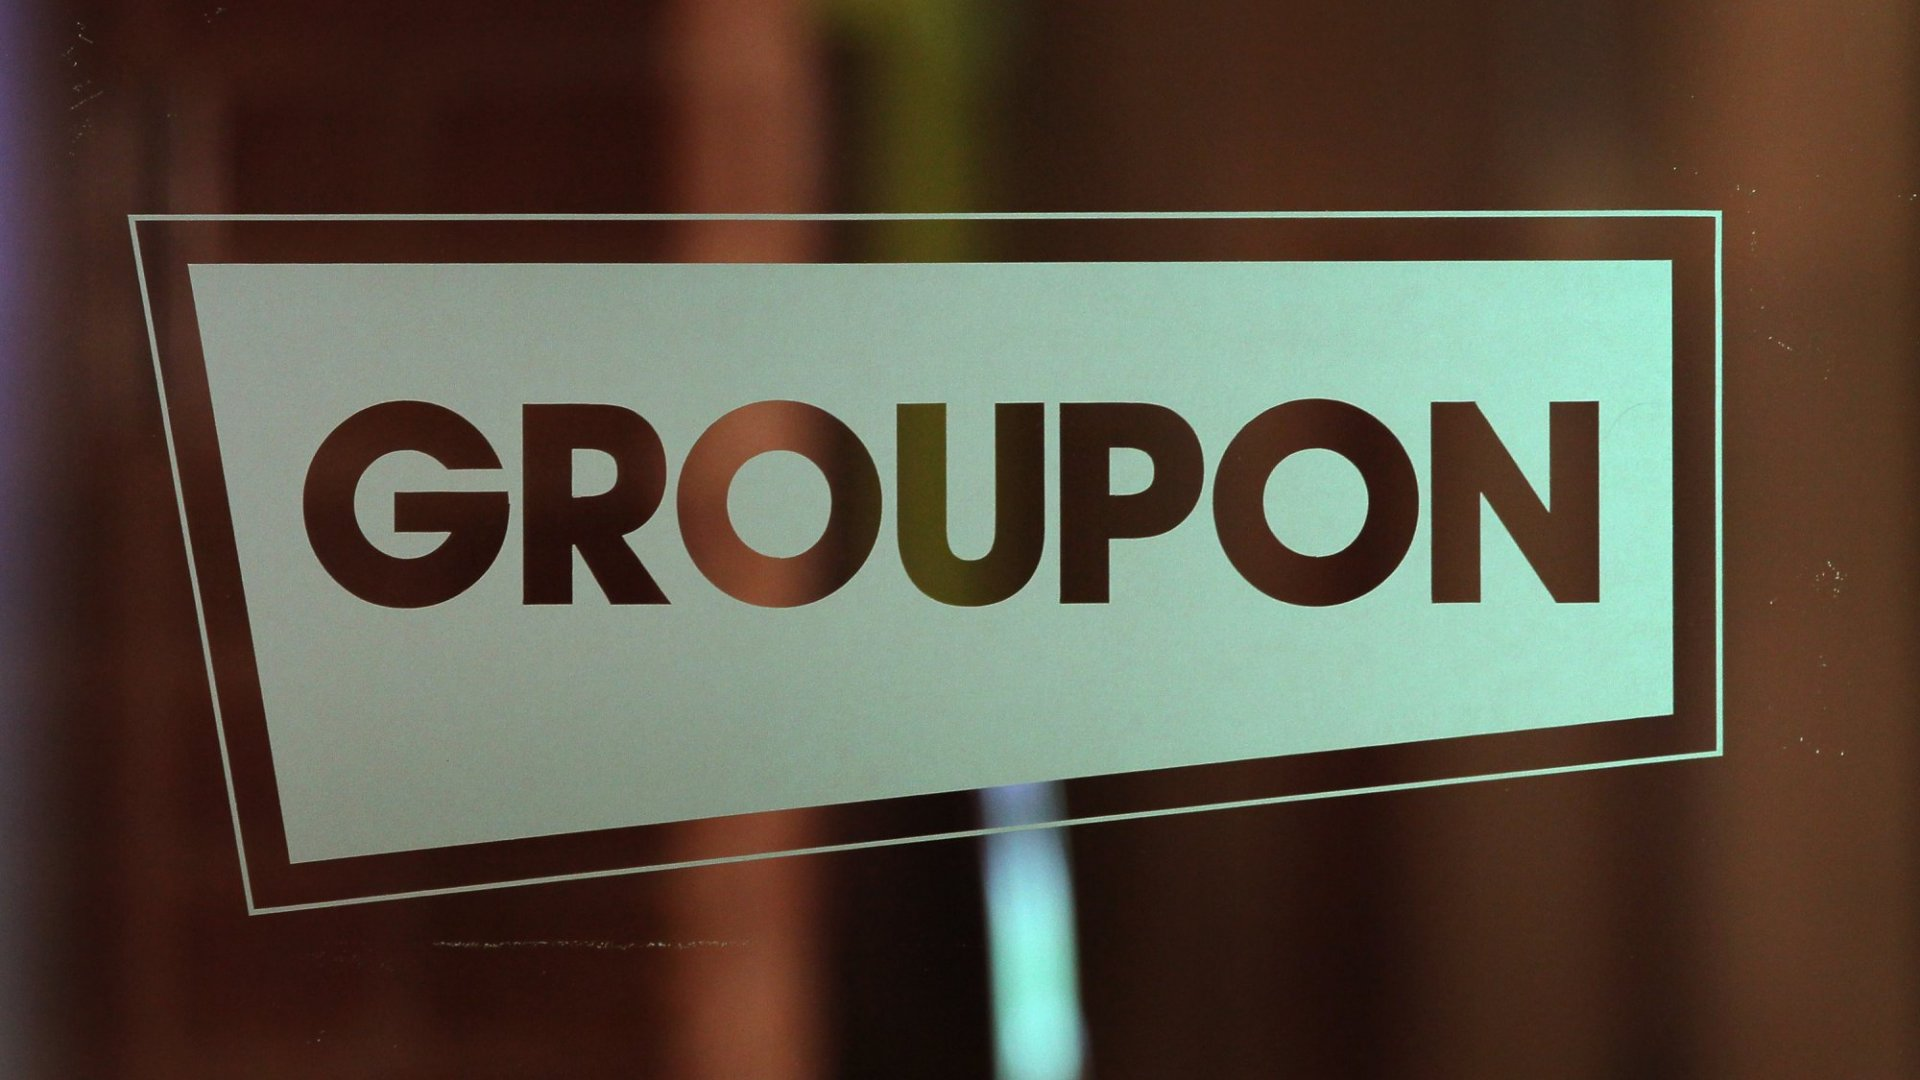 Groupon Buys Rival LivingSocial for 'Non-Material' Amount